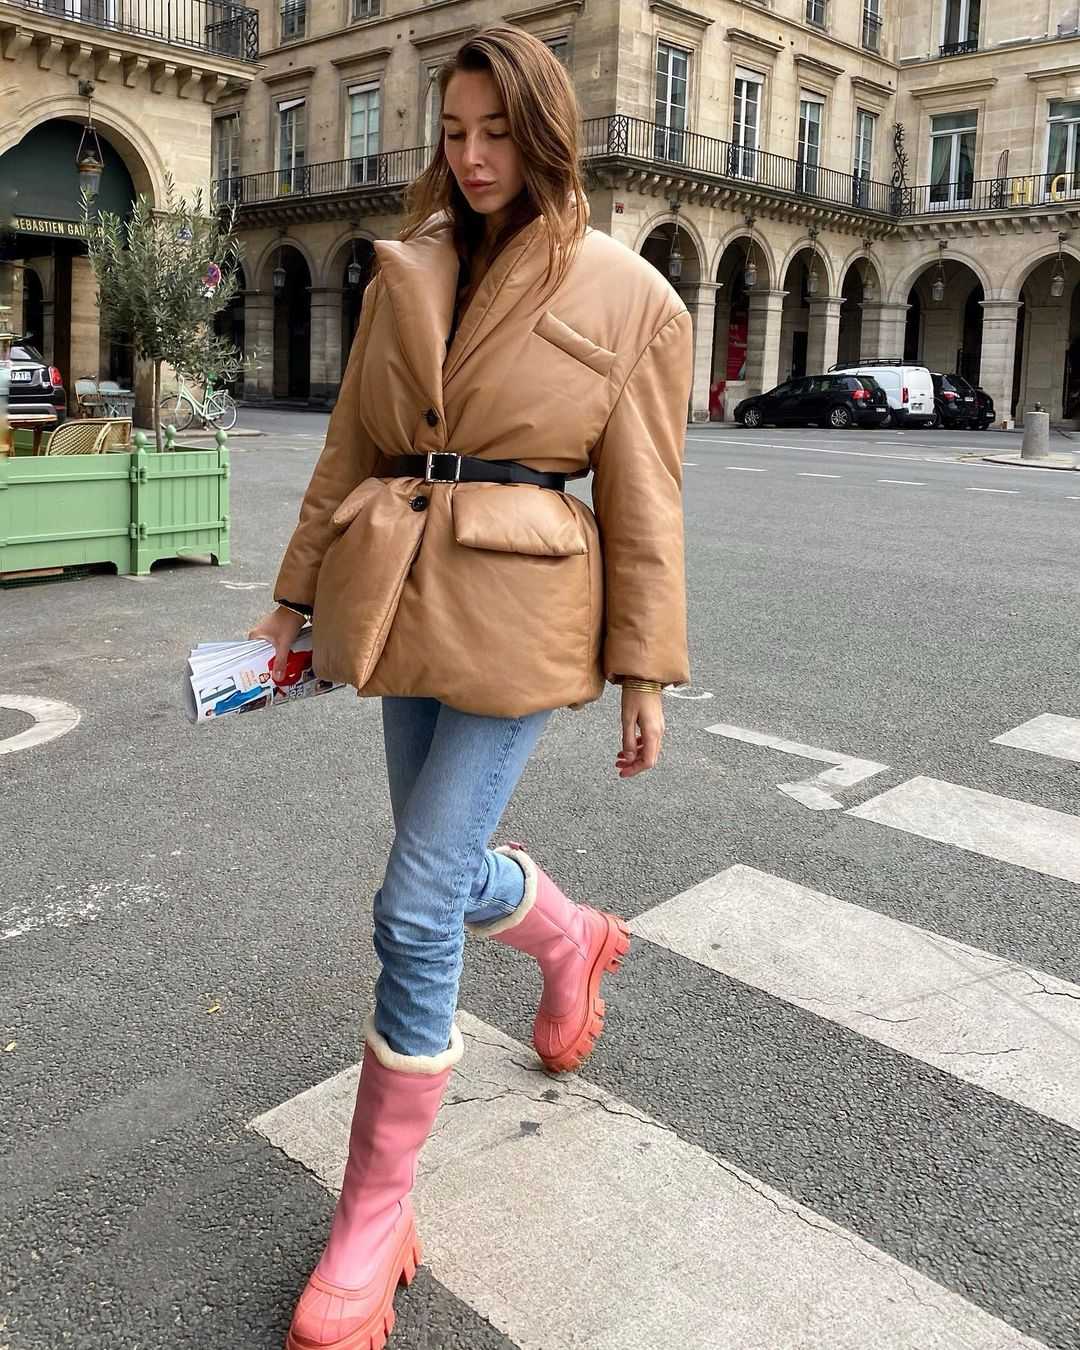 estelle-chemouny-prada-monolith-shearling-lined-leather-boots-instagram